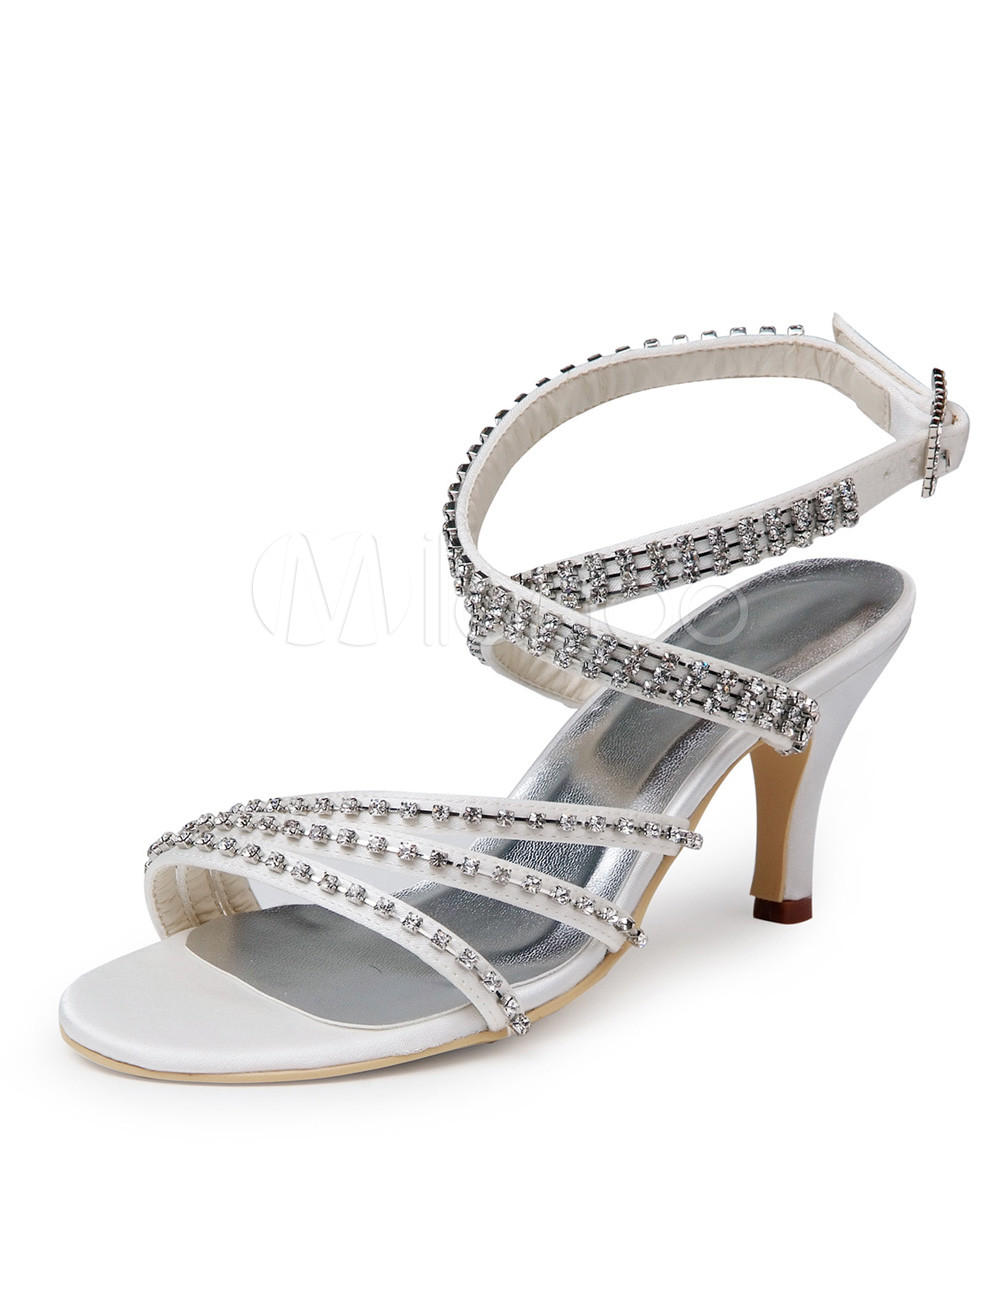 Buy Elegant Ecru White Silk And Satin Rhinestone Peep Toe Shoes for Bride for $62.99 in Milanoo store